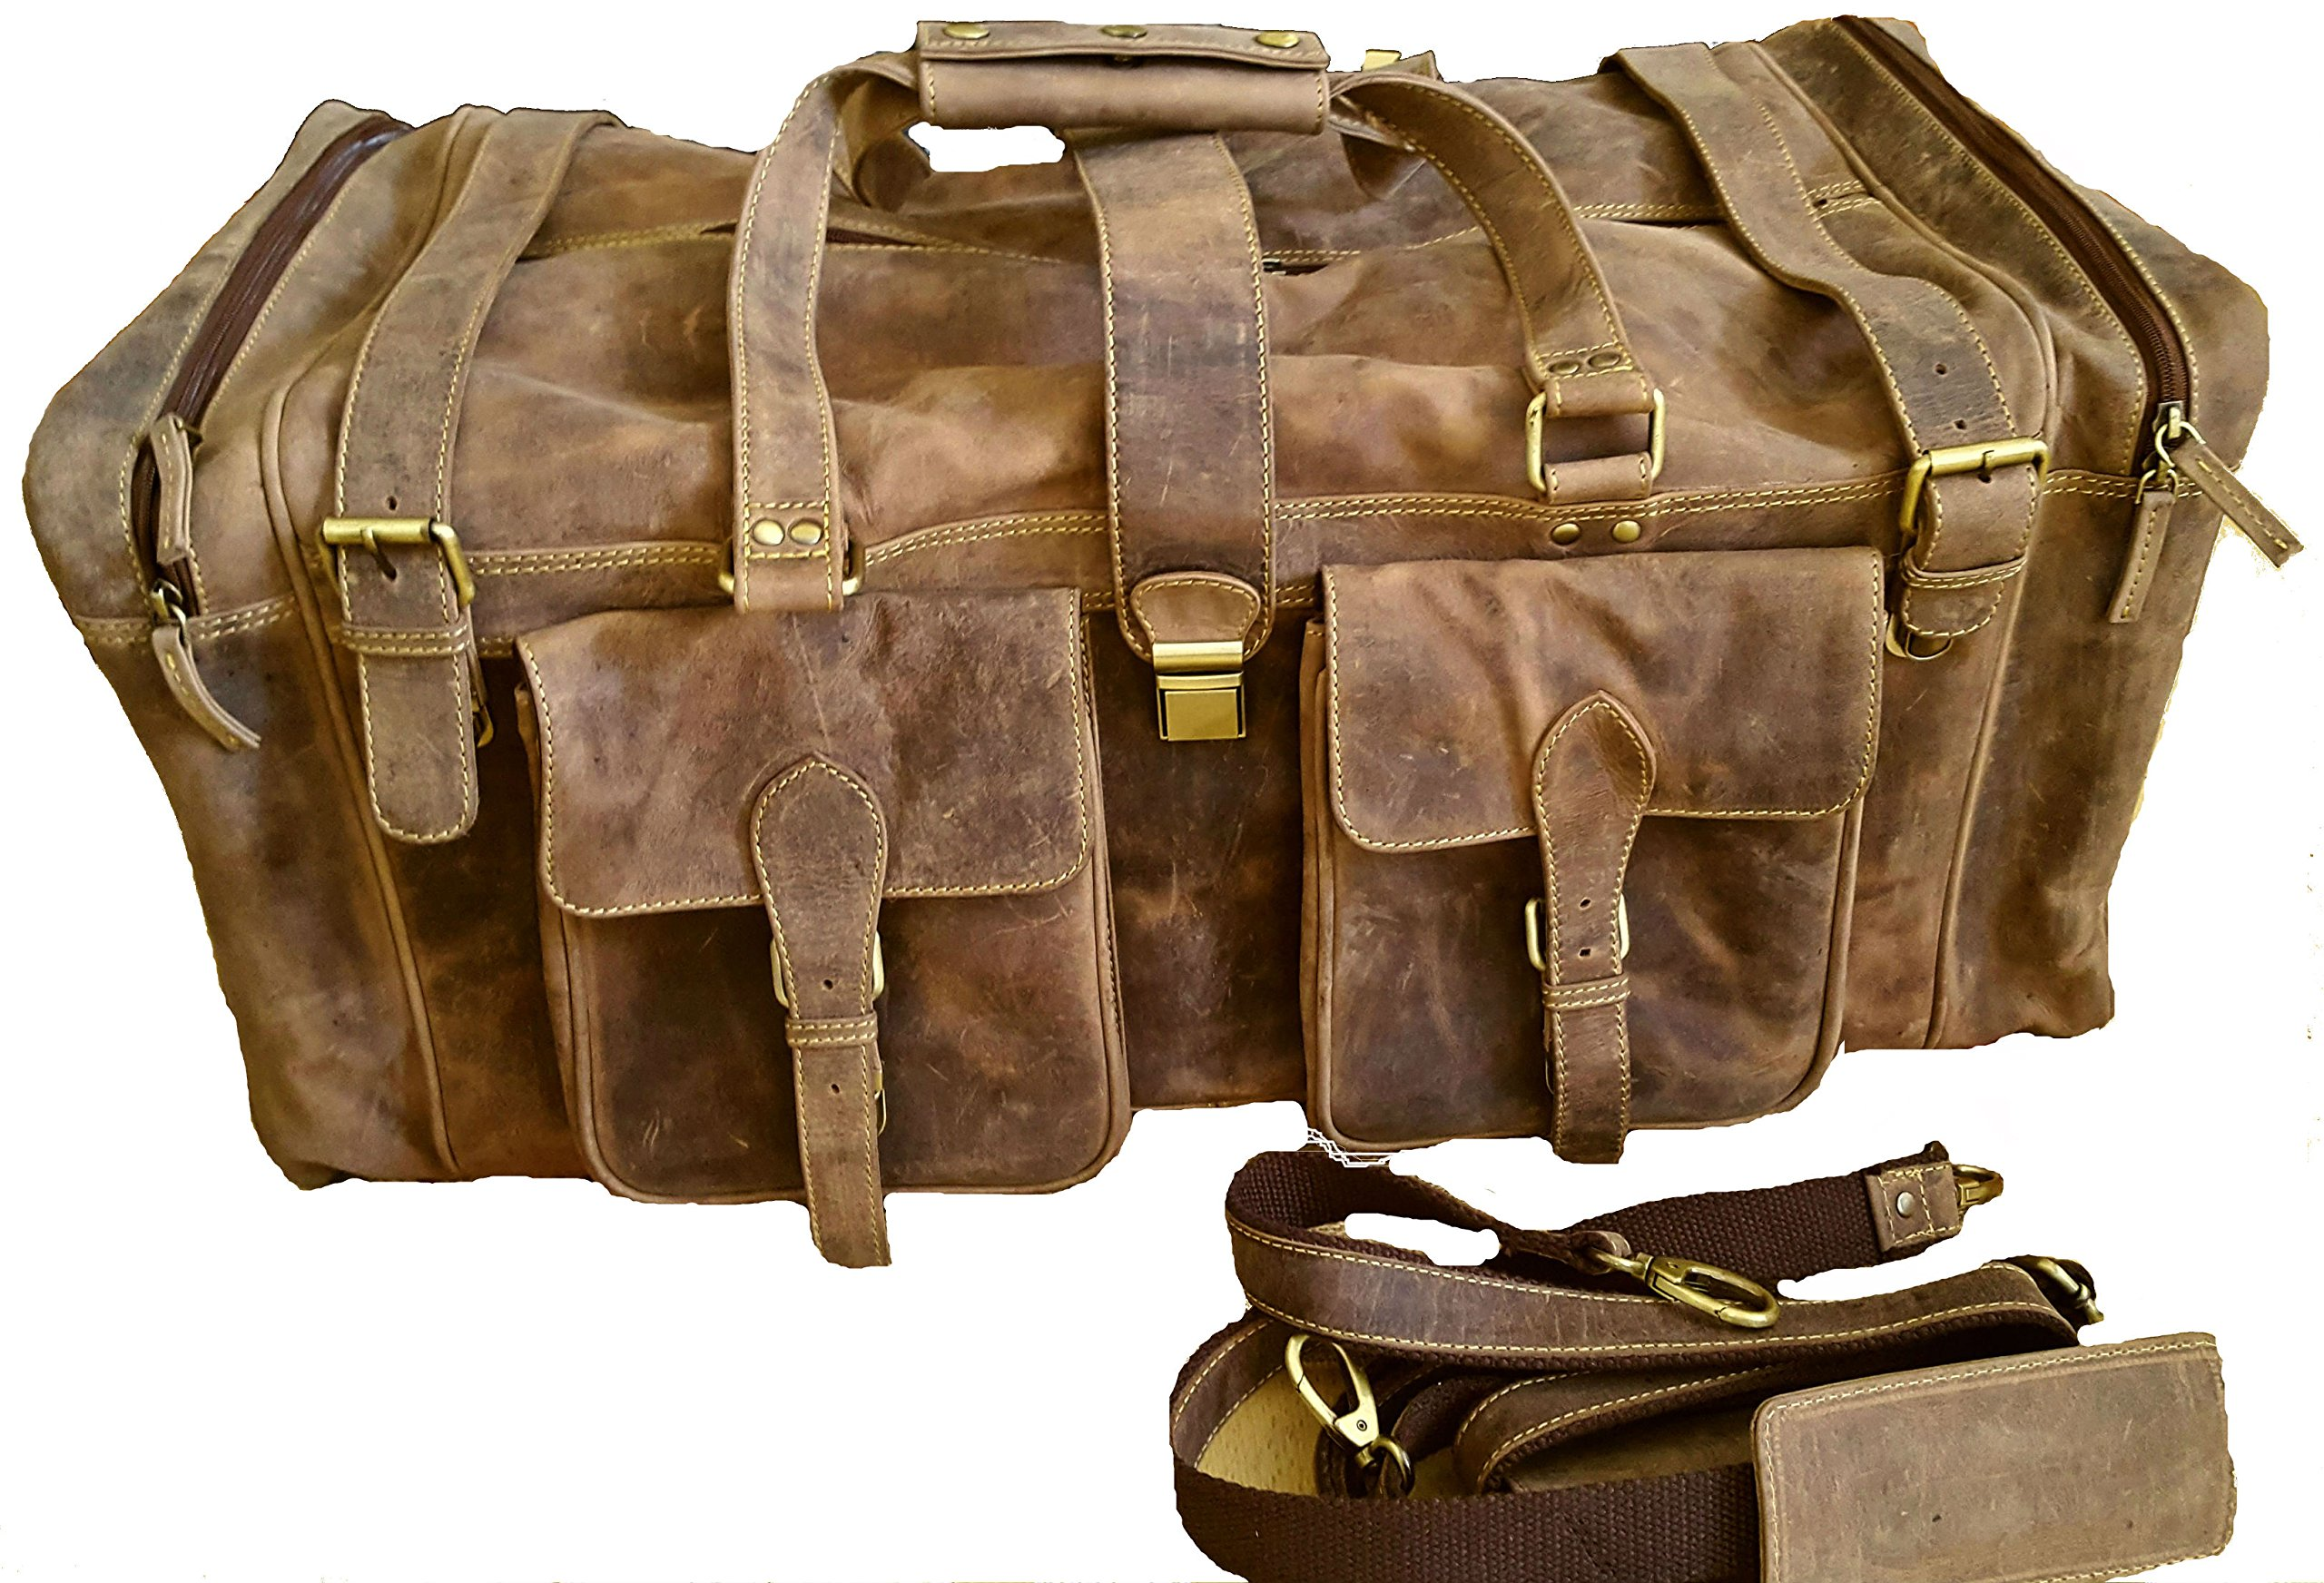 28 Inch Real Leather Vintage Travel Bag Large Gym Duffel Brown Men's Holdall Weekend Overnight Luggage